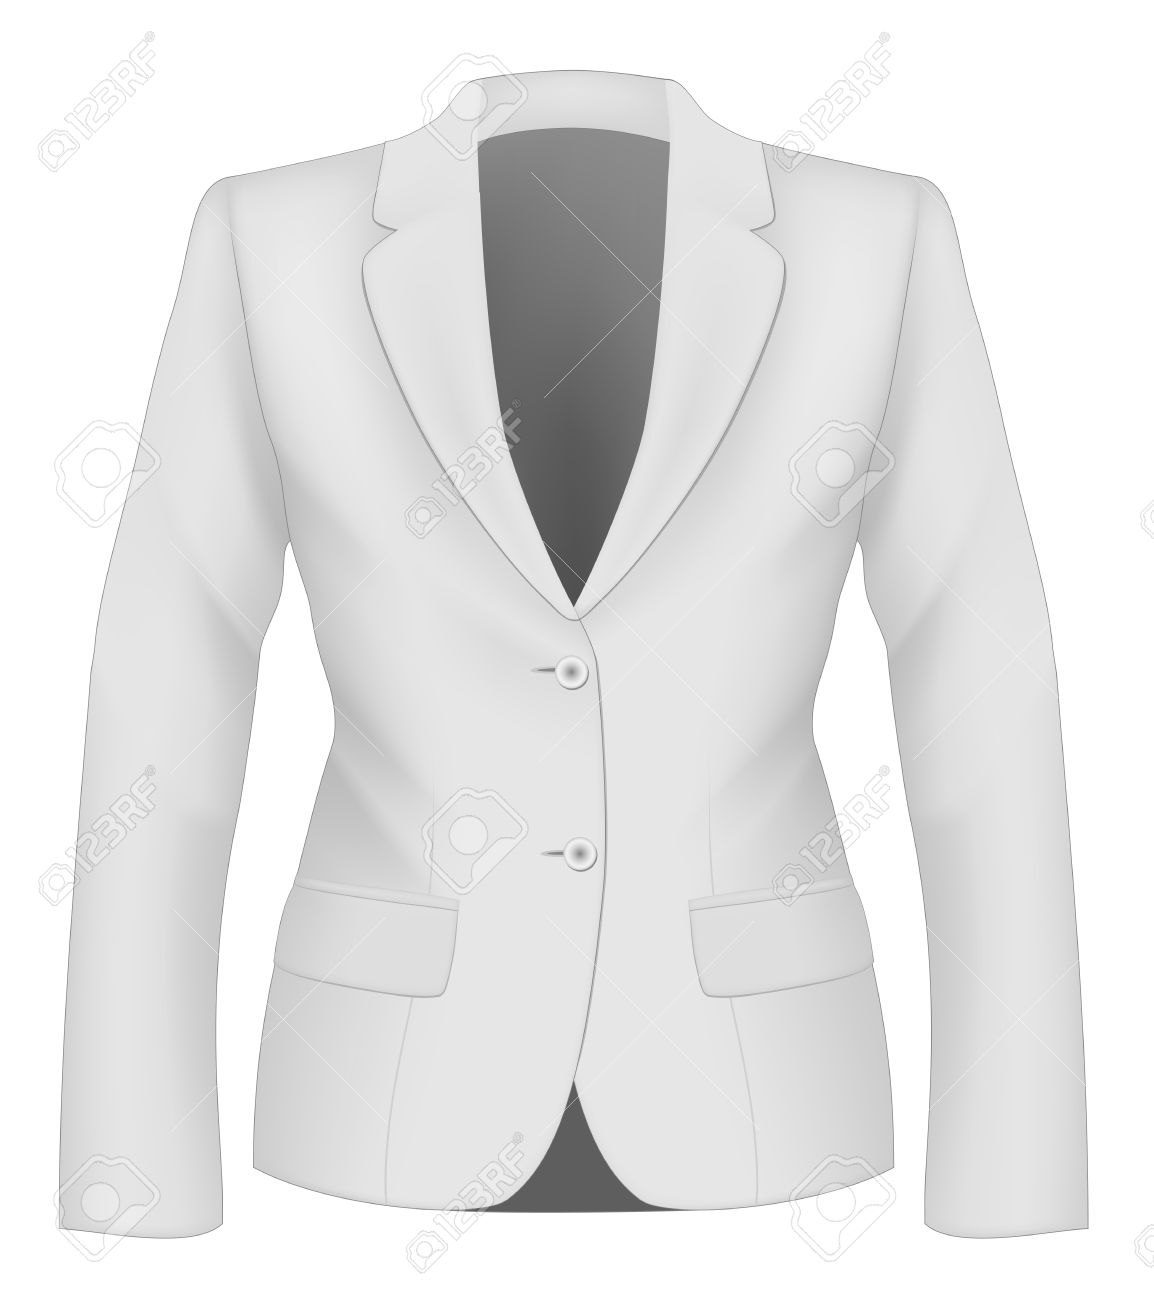 Ladies White Suit Jacket For Business Women Formal Work Wear